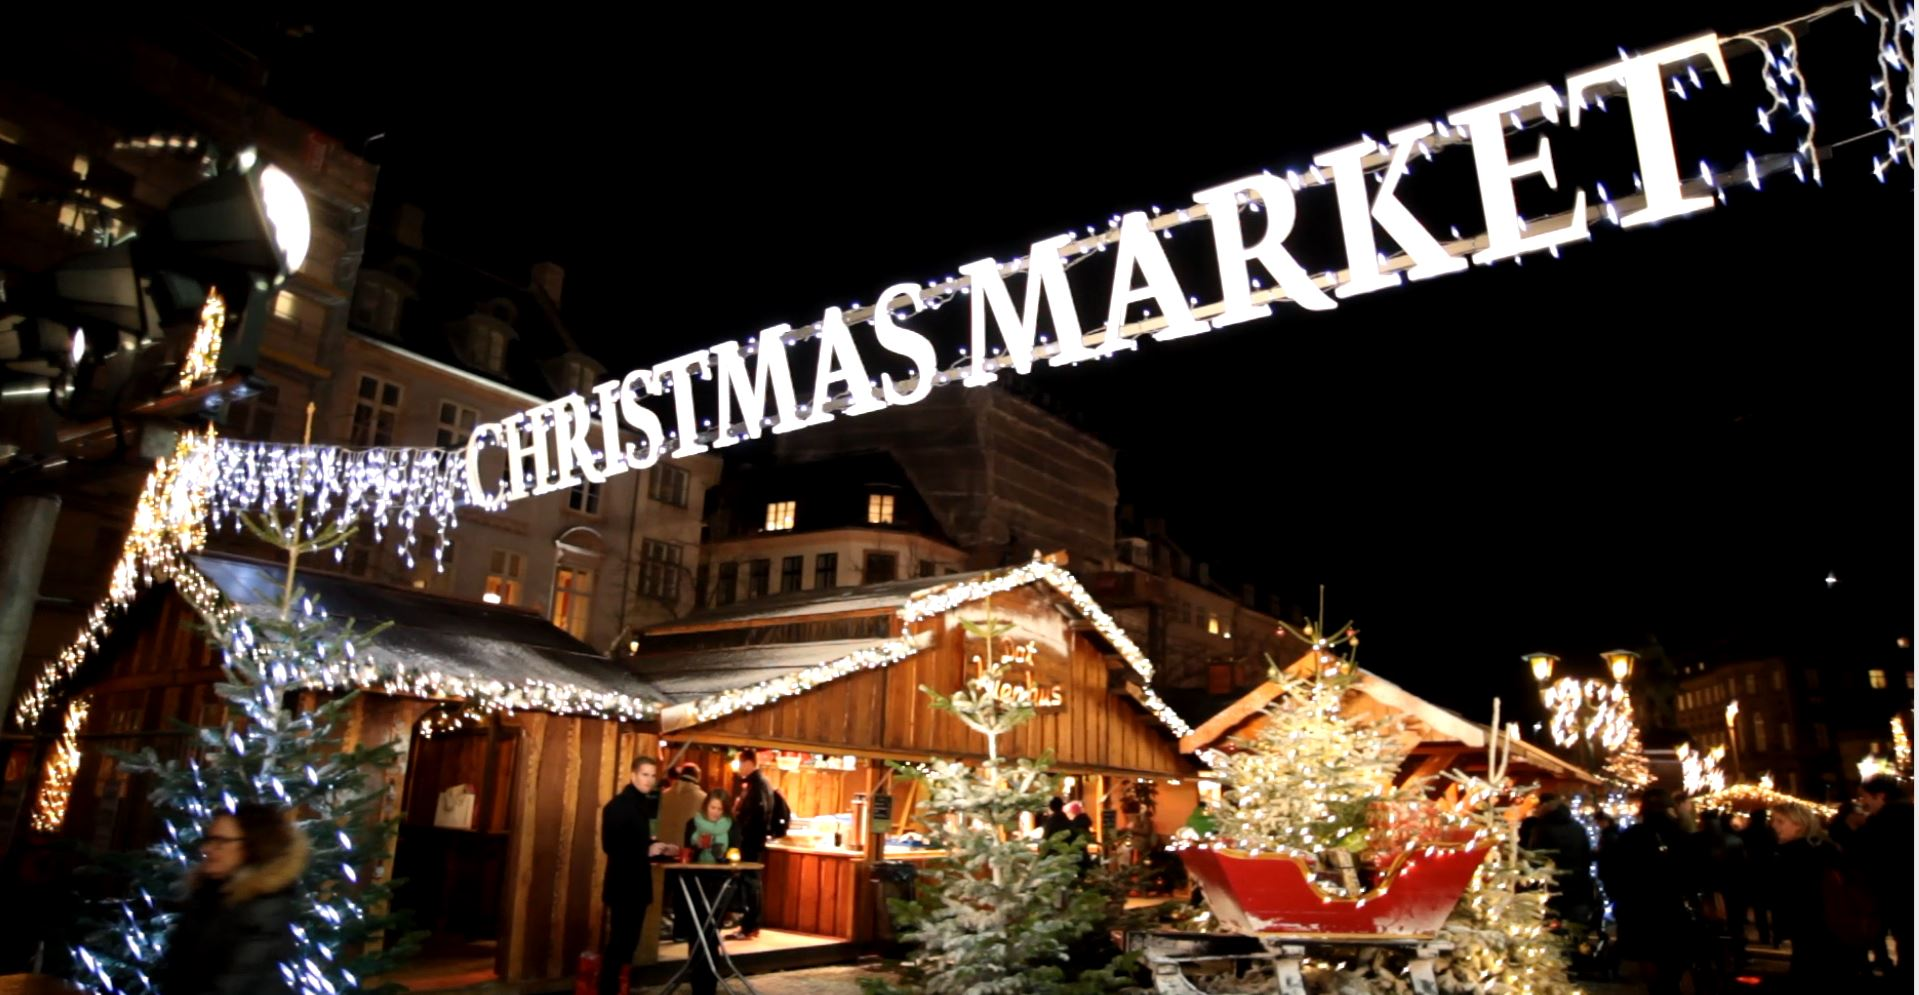 Christmas Eve Market on Saturday, December 24th, 7am-12 noon